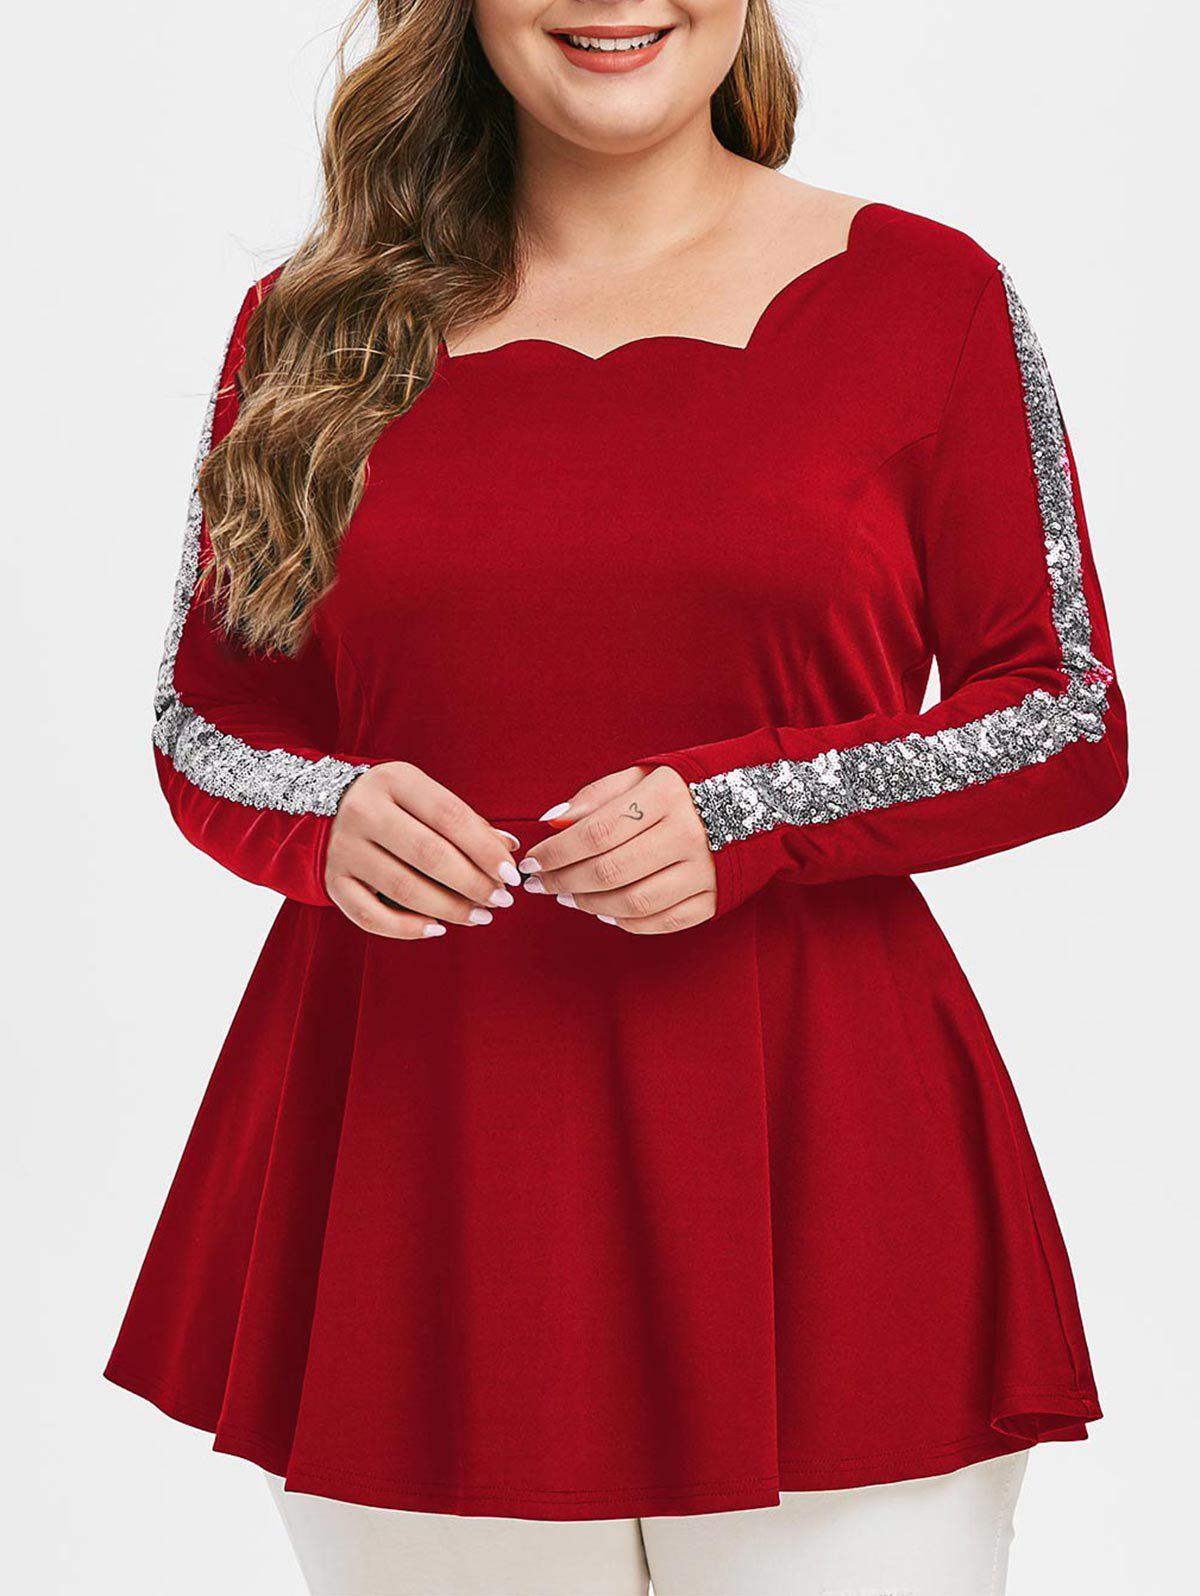 Plus Size Scalloped Sequins T Shirt - CHESTNUT RED 3X